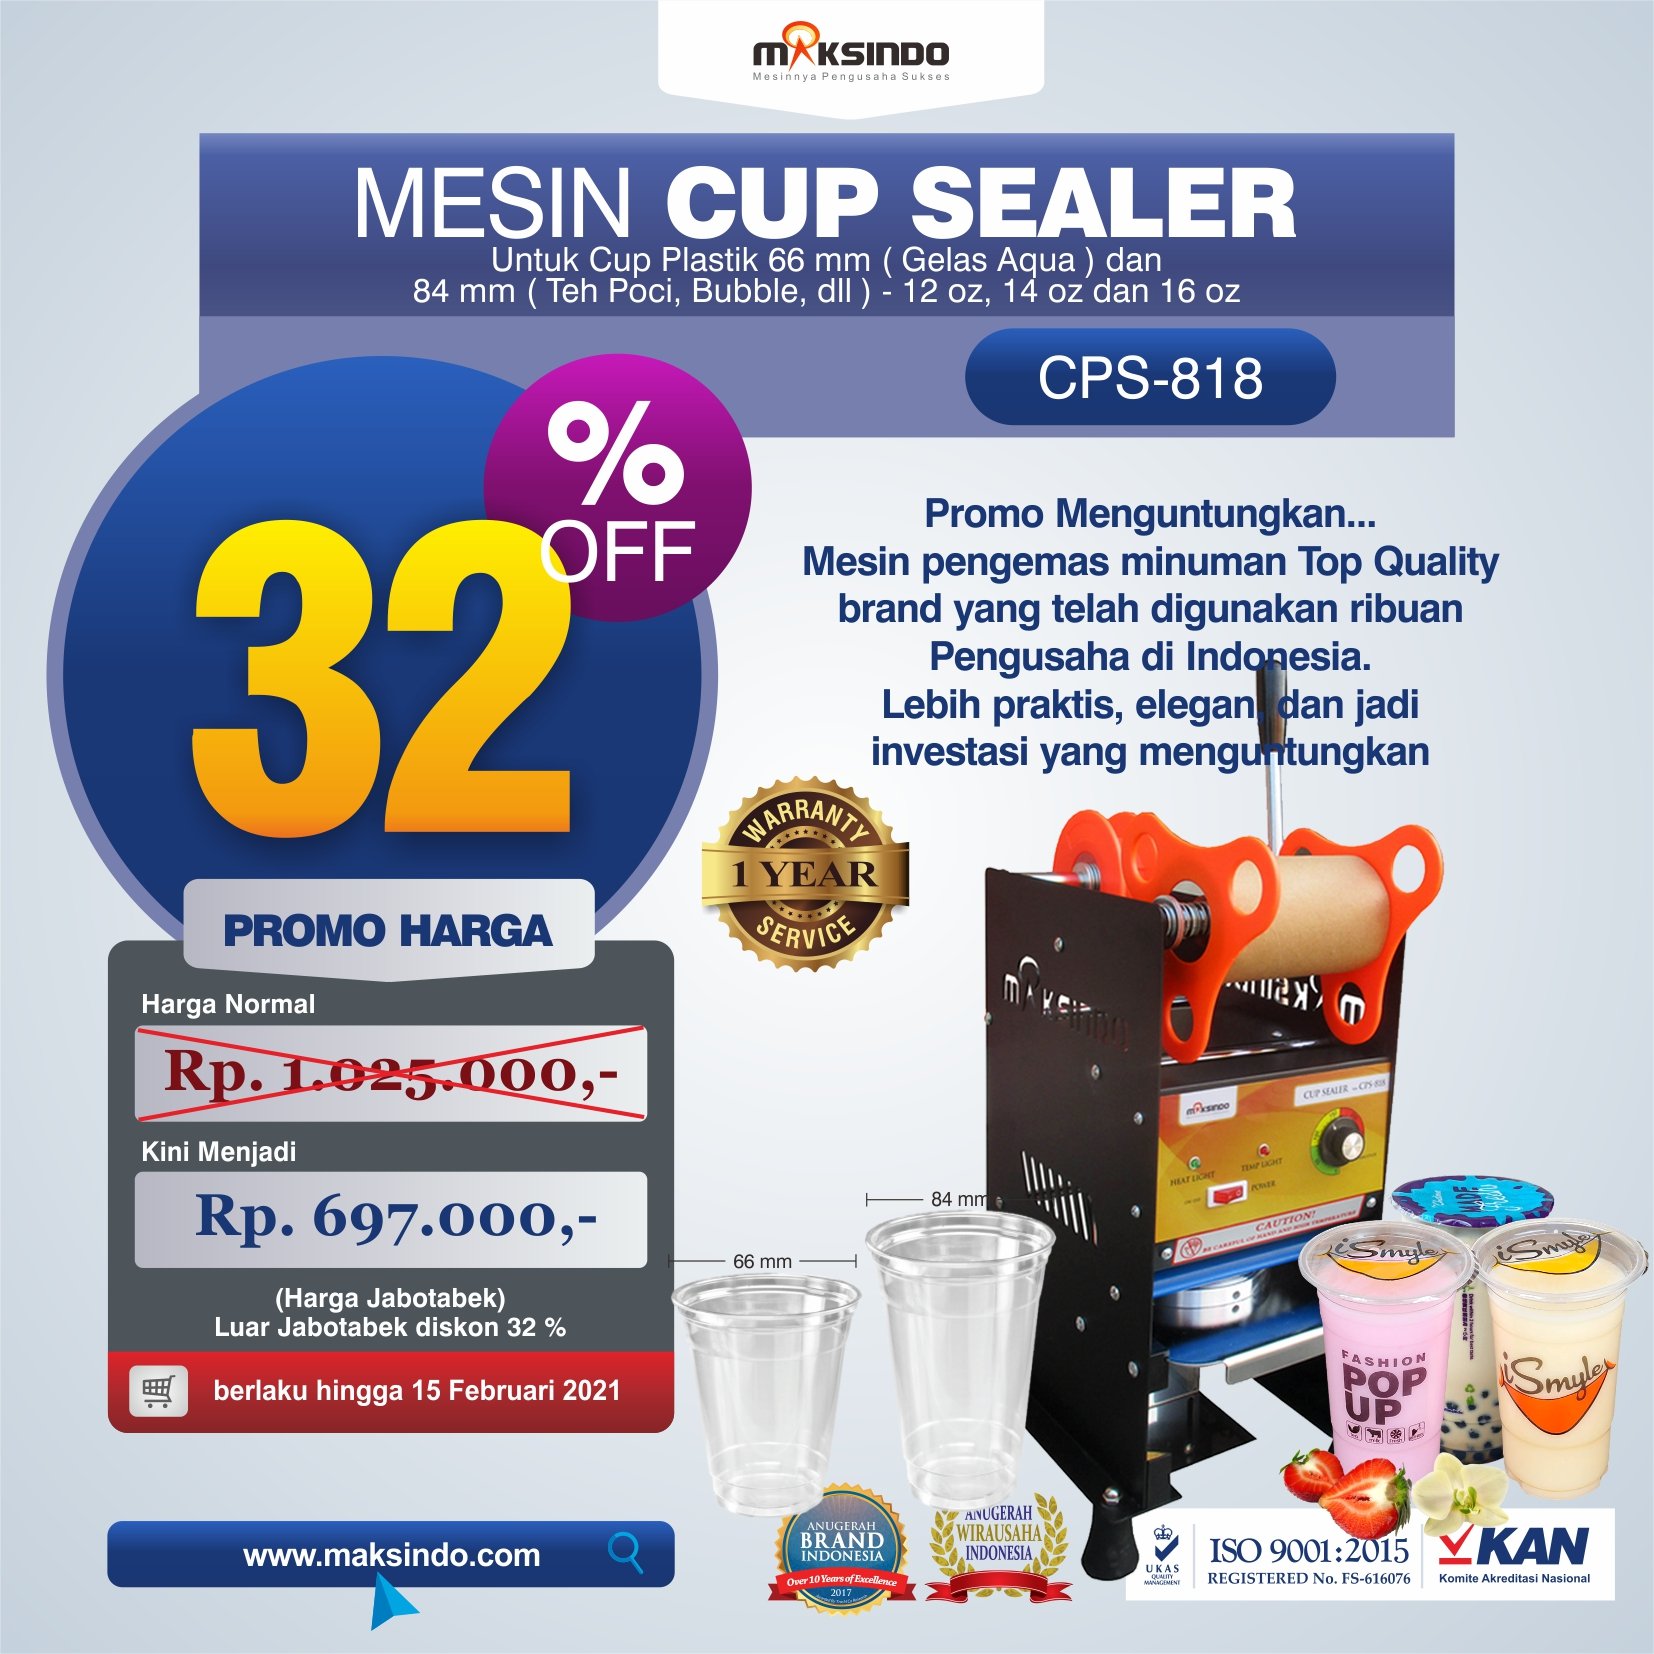 Jual Mesin Cup Sealer Manual (CPS-818) di Medan